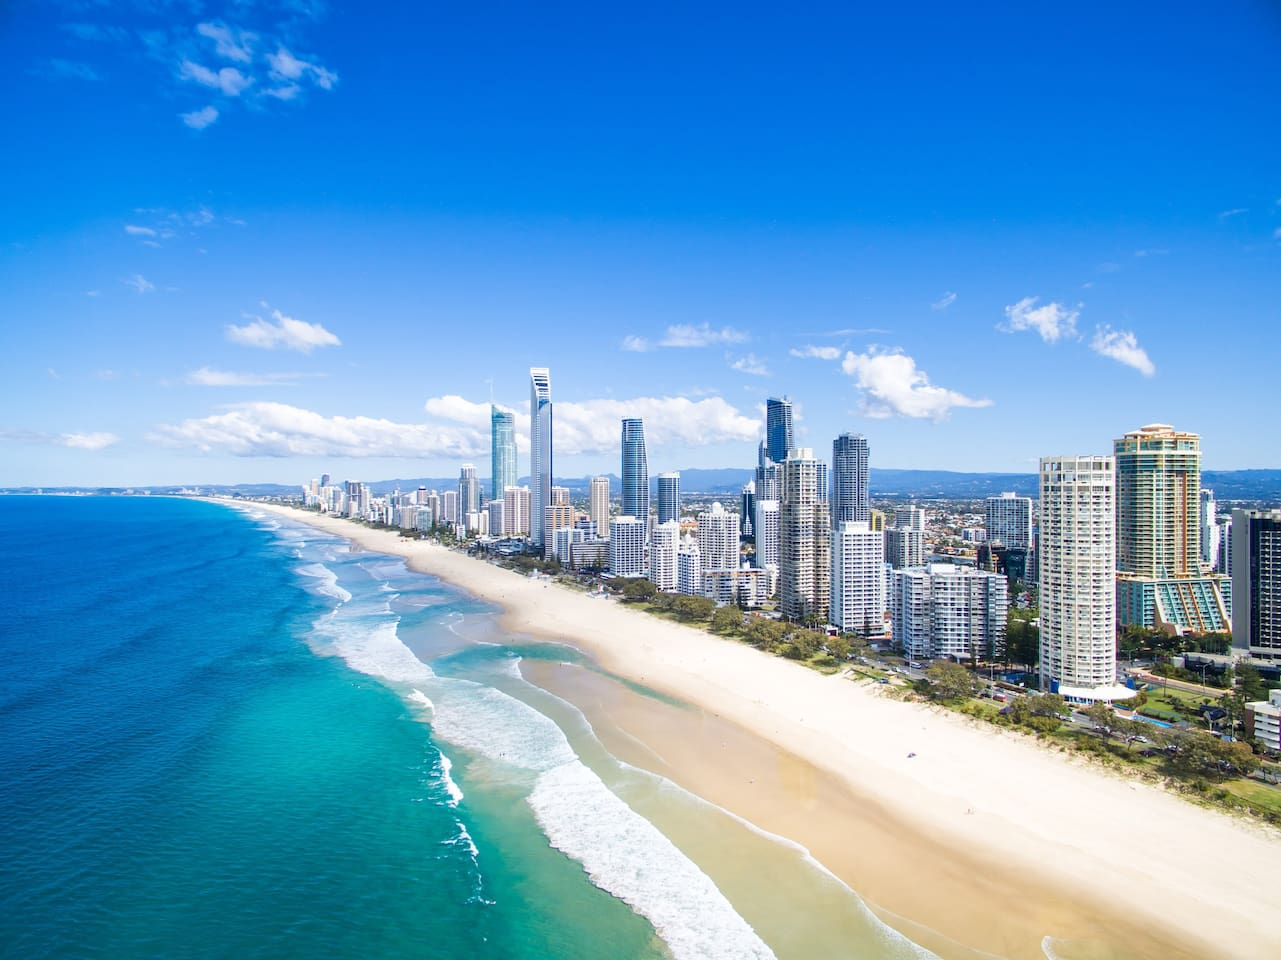 "Located in the heart of Surfers Paradise GC, downstairs is the famous ""Surfers Paradise"" beach just walk 5 minutes 位于黃金海岸冲浪者天堂黄金核心地段, 下楼走5分钟就是著名的""冲浪者天堂""沙滩"